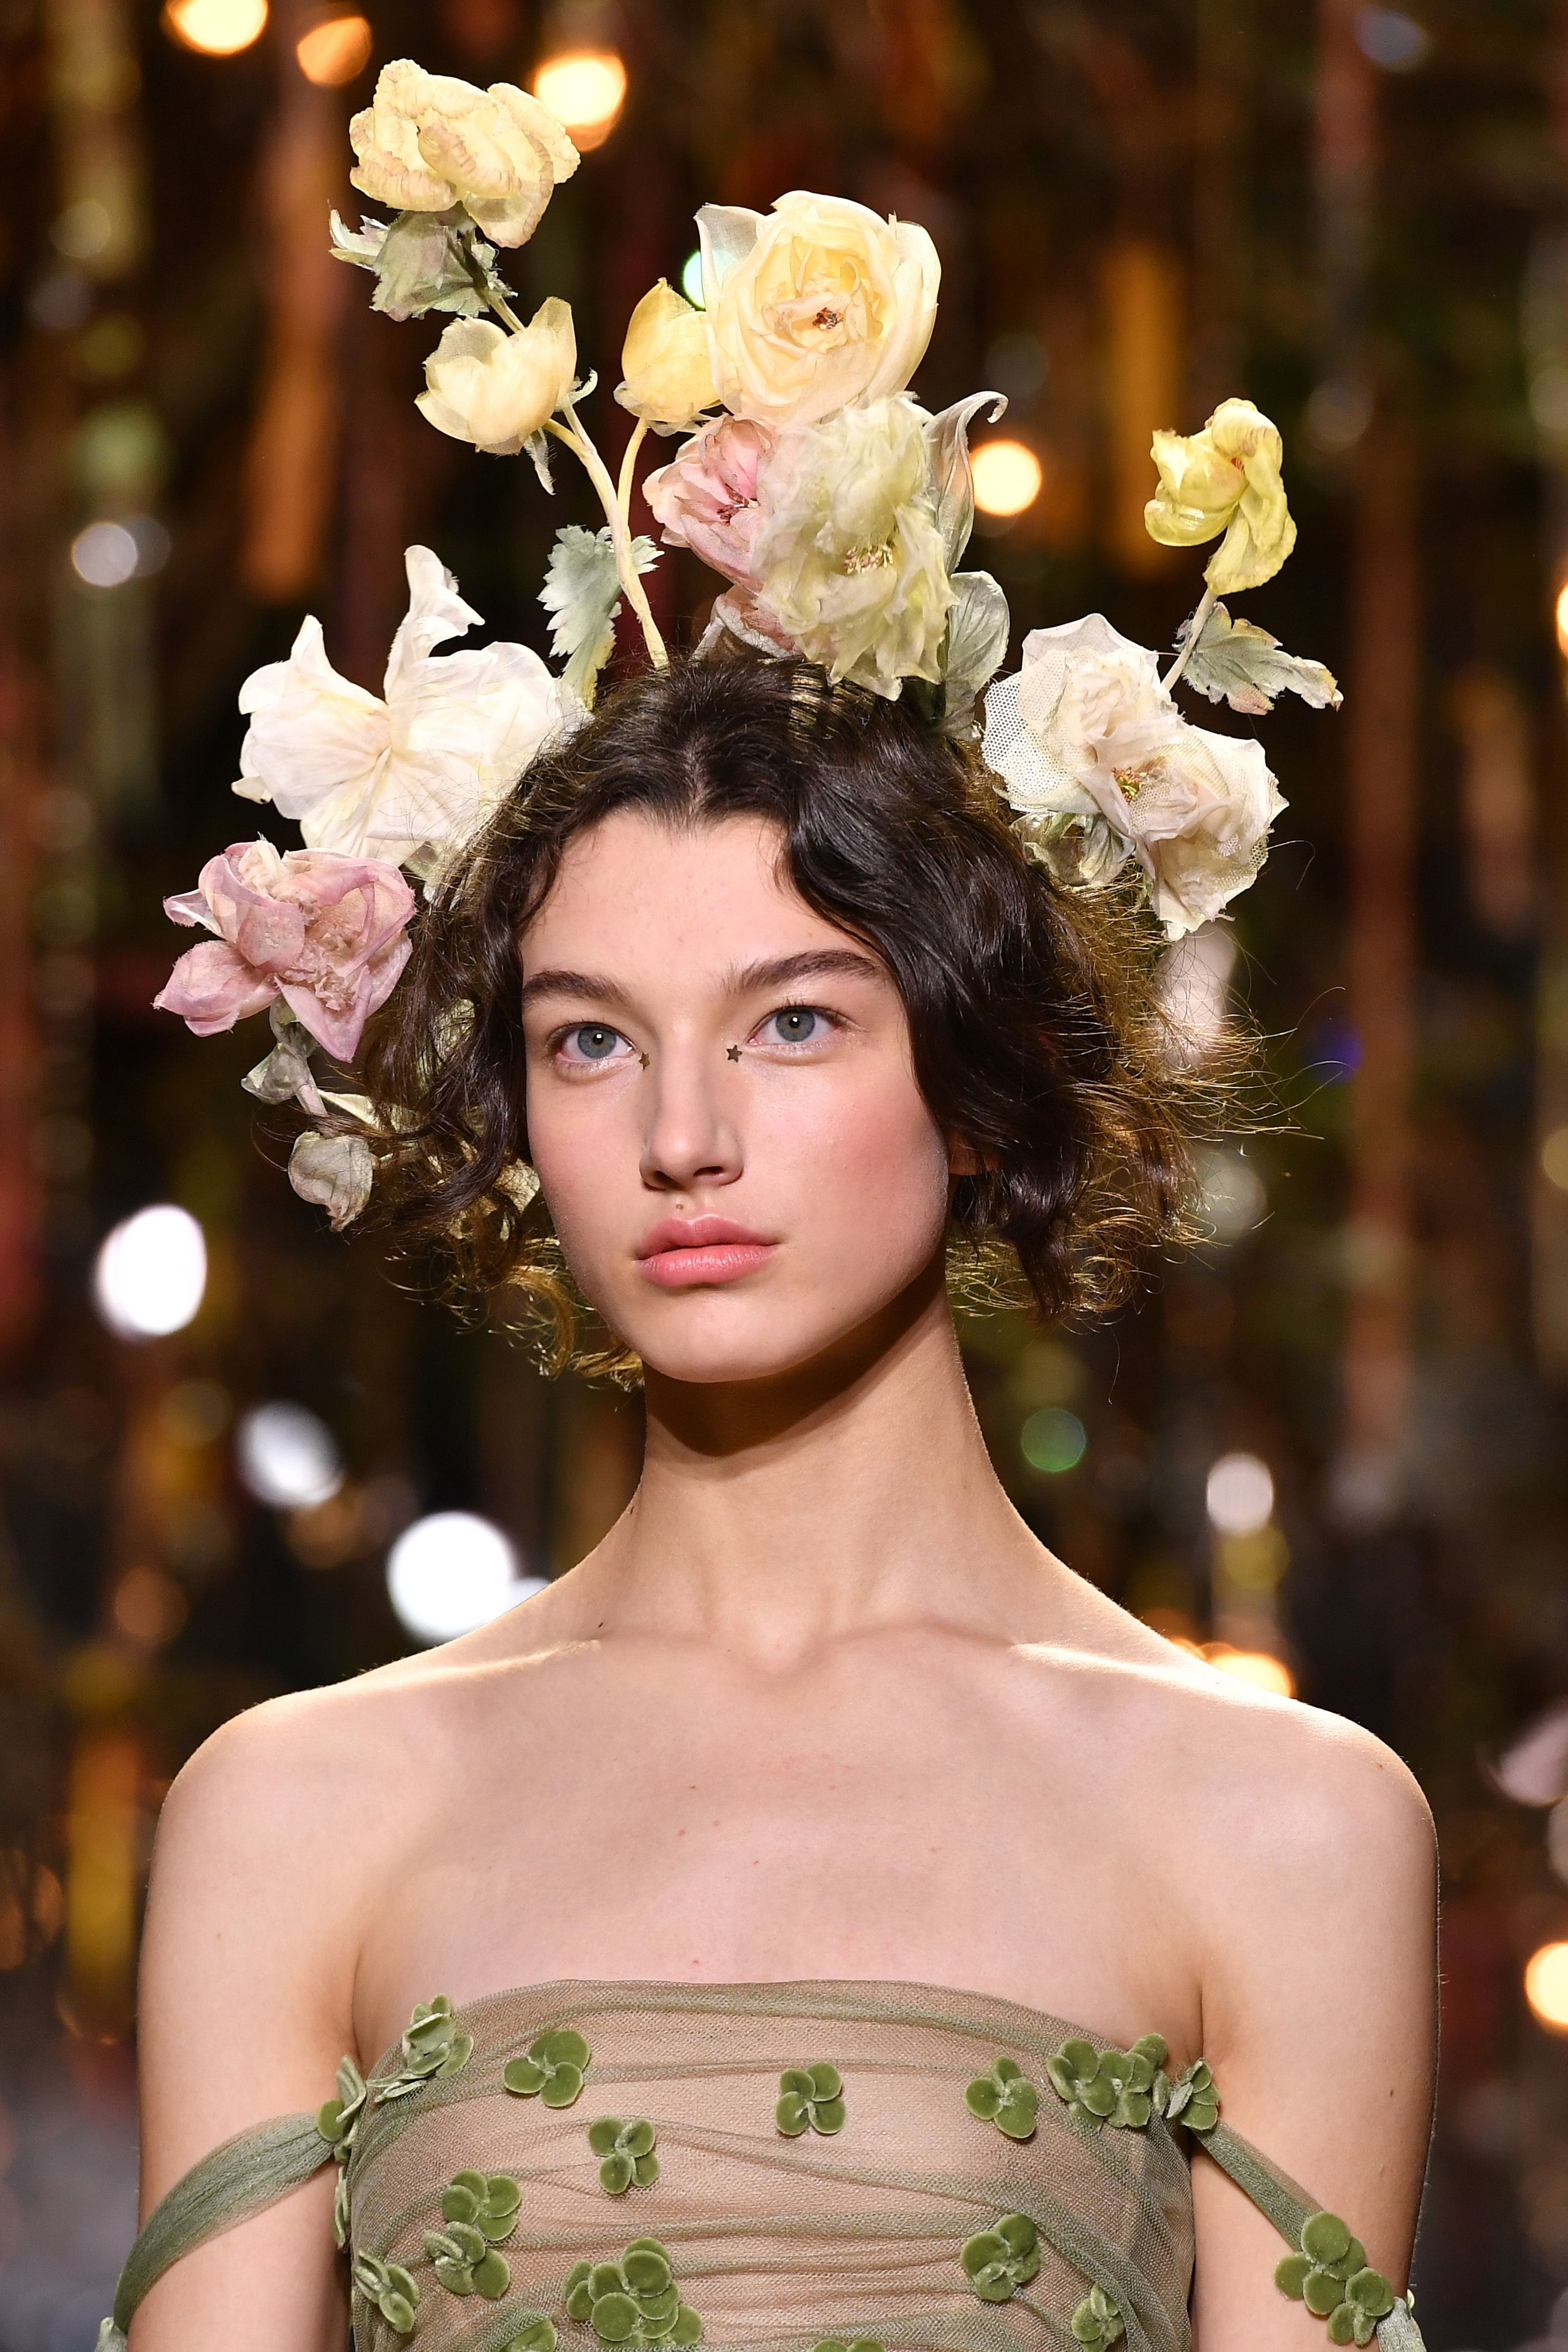 Dior Couture Hairstyles For Spring And Summer 2017 Flower Crowns